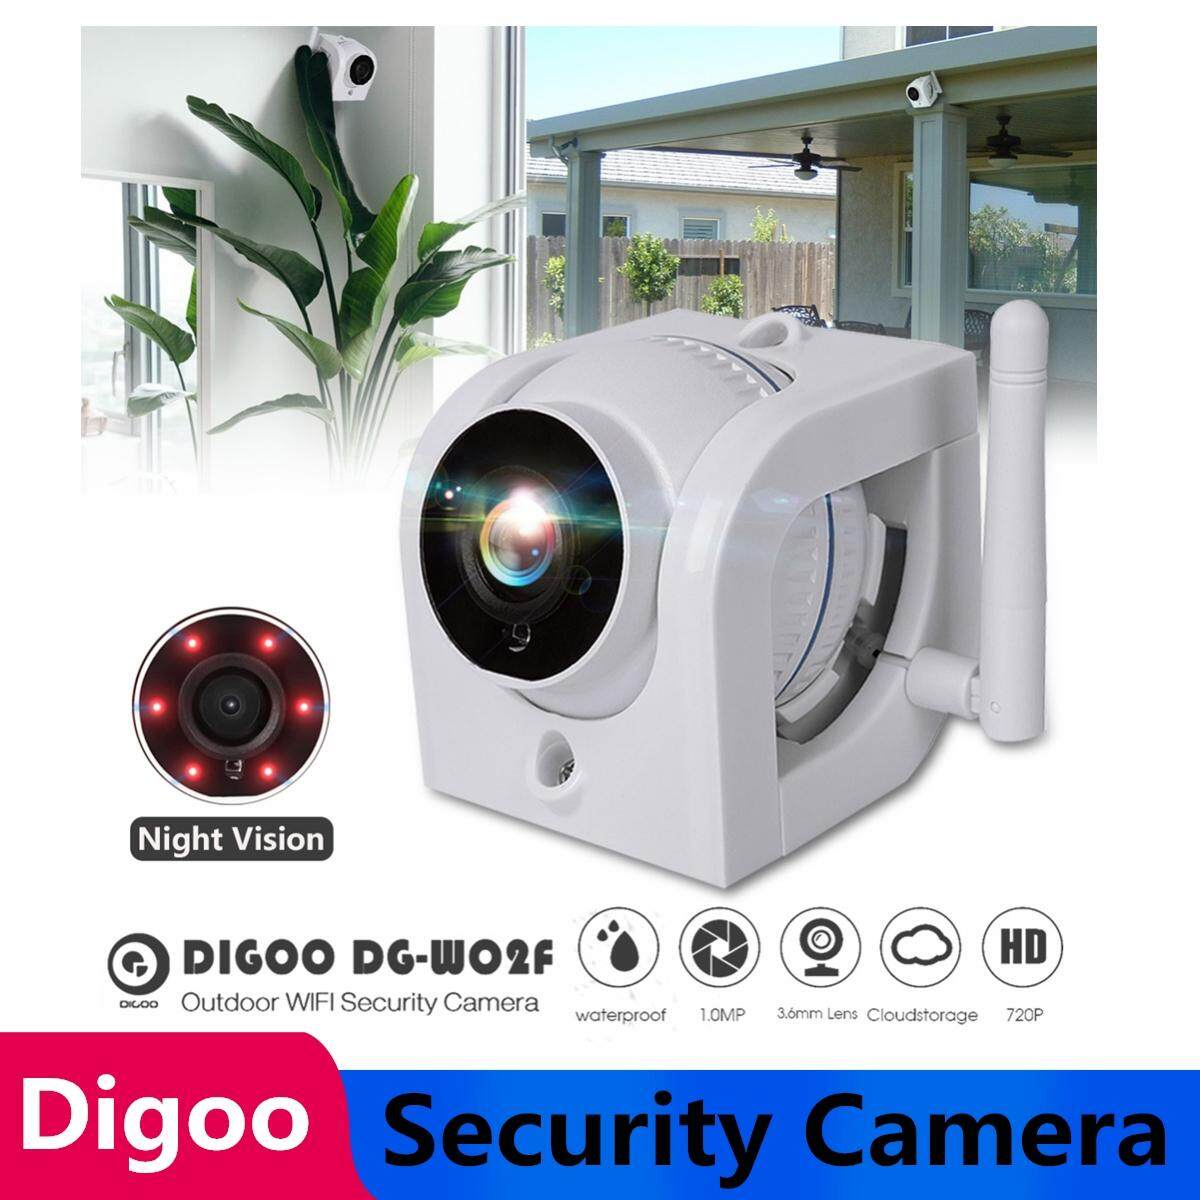 【free Shipping + Super Deal + Limited Offer】digoo Dg-W02f Cloud Storage 3.6mm Lens 720p Waterproof Outdoor Wifi Security Ip Camera Motion Detection Alarm Support Amazon Web Service Onvif Monitor - White By Freebang.